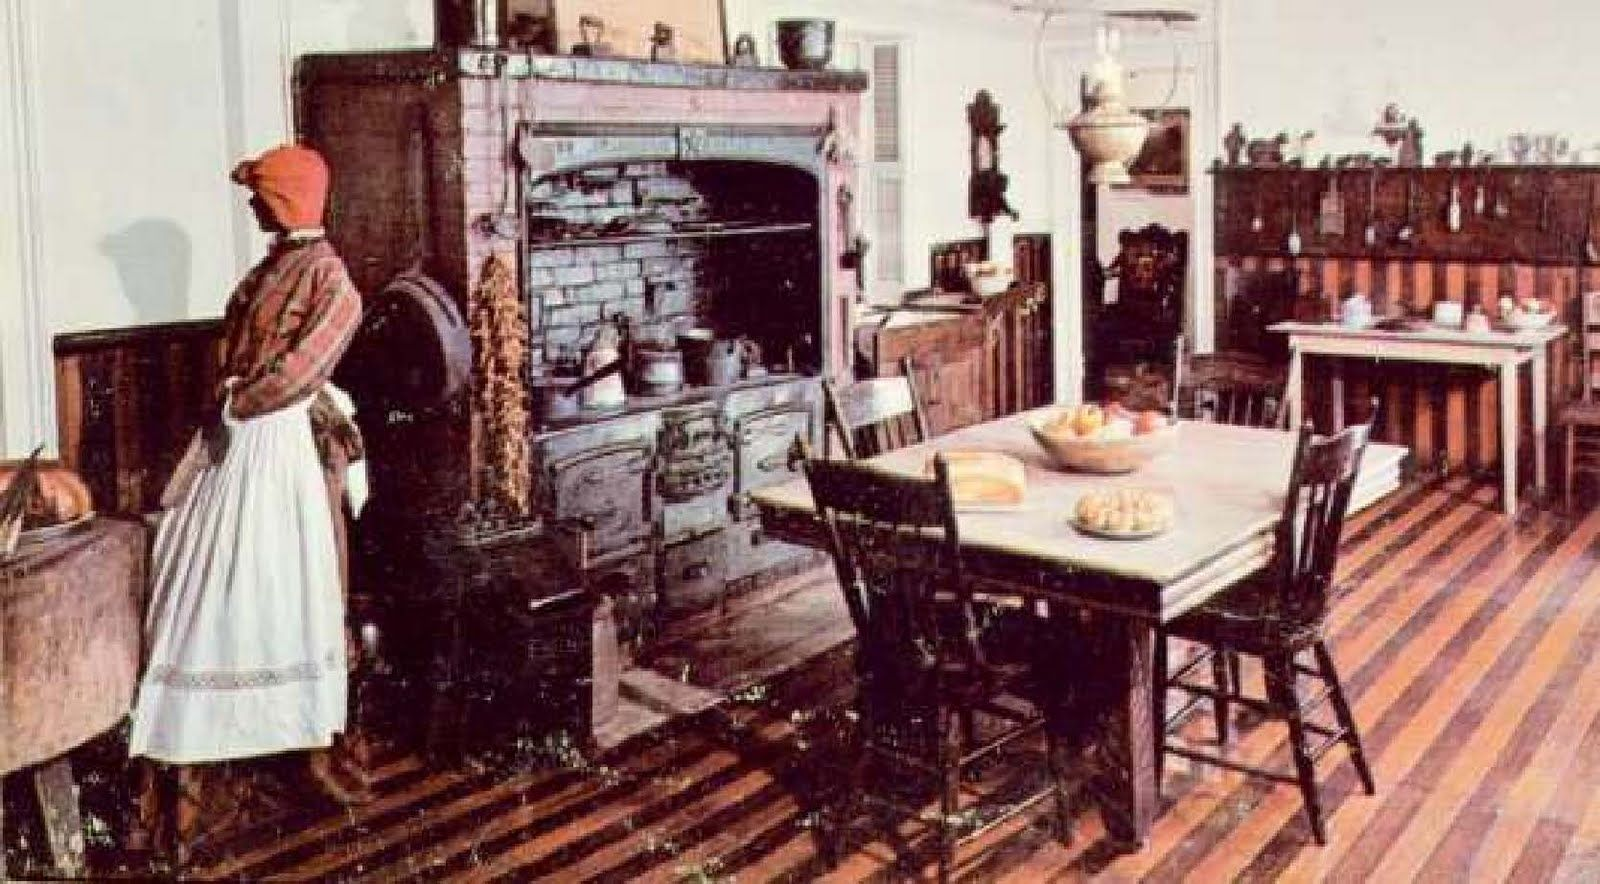 Upper middle class living room - Room Upper Middle Class Dining Room Upper Middle Class Dining 1890 Uppermiddle Kitchen Writing Research